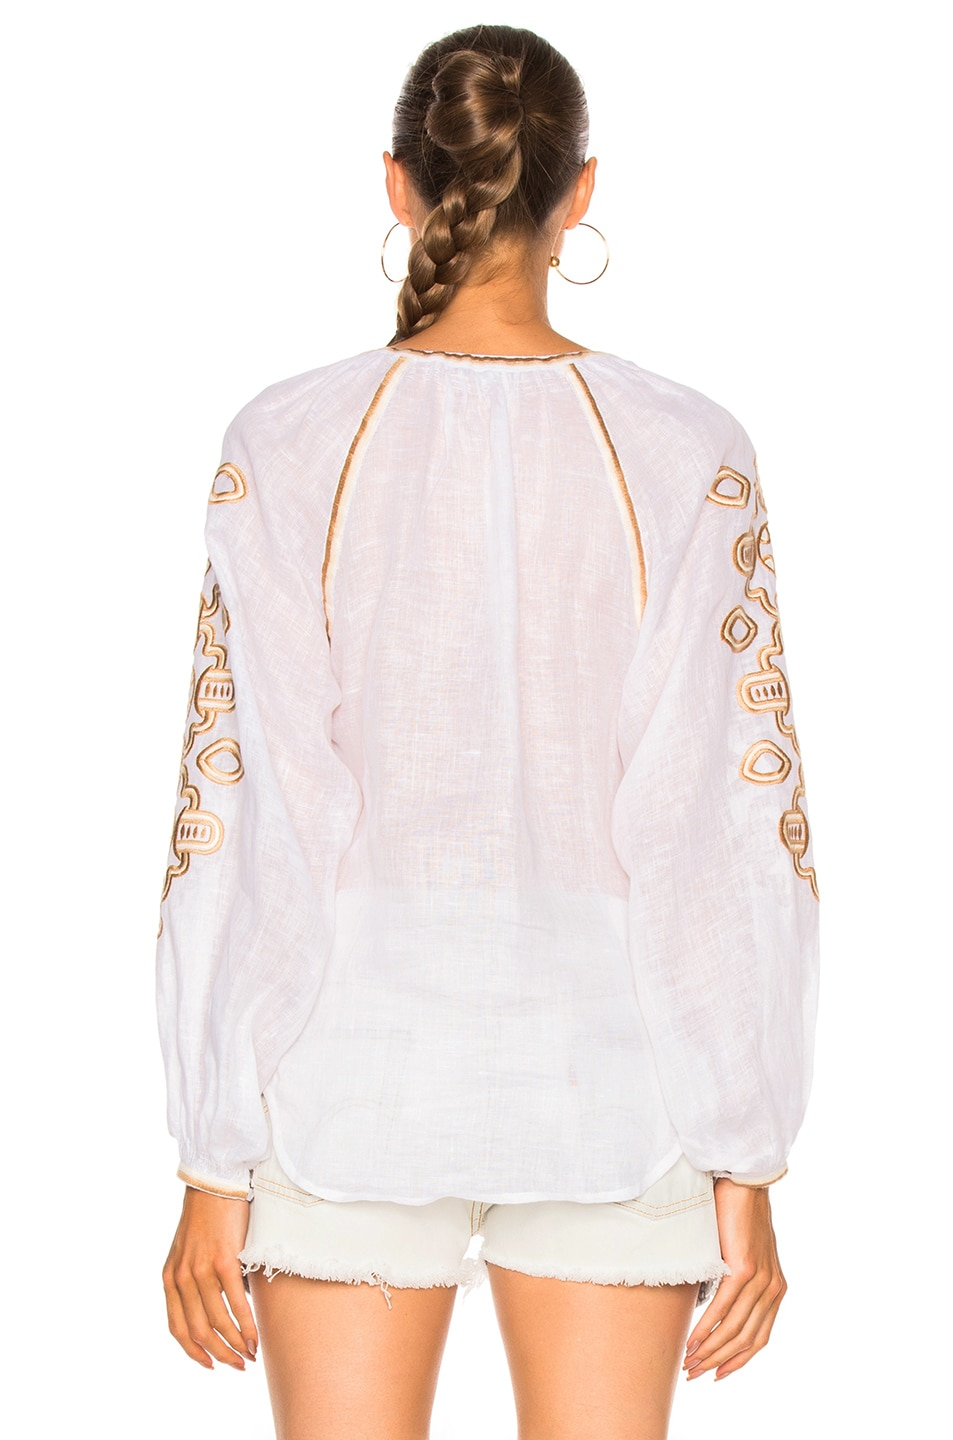 Image 4 of March 11 African Embroidered Top in Tan & White